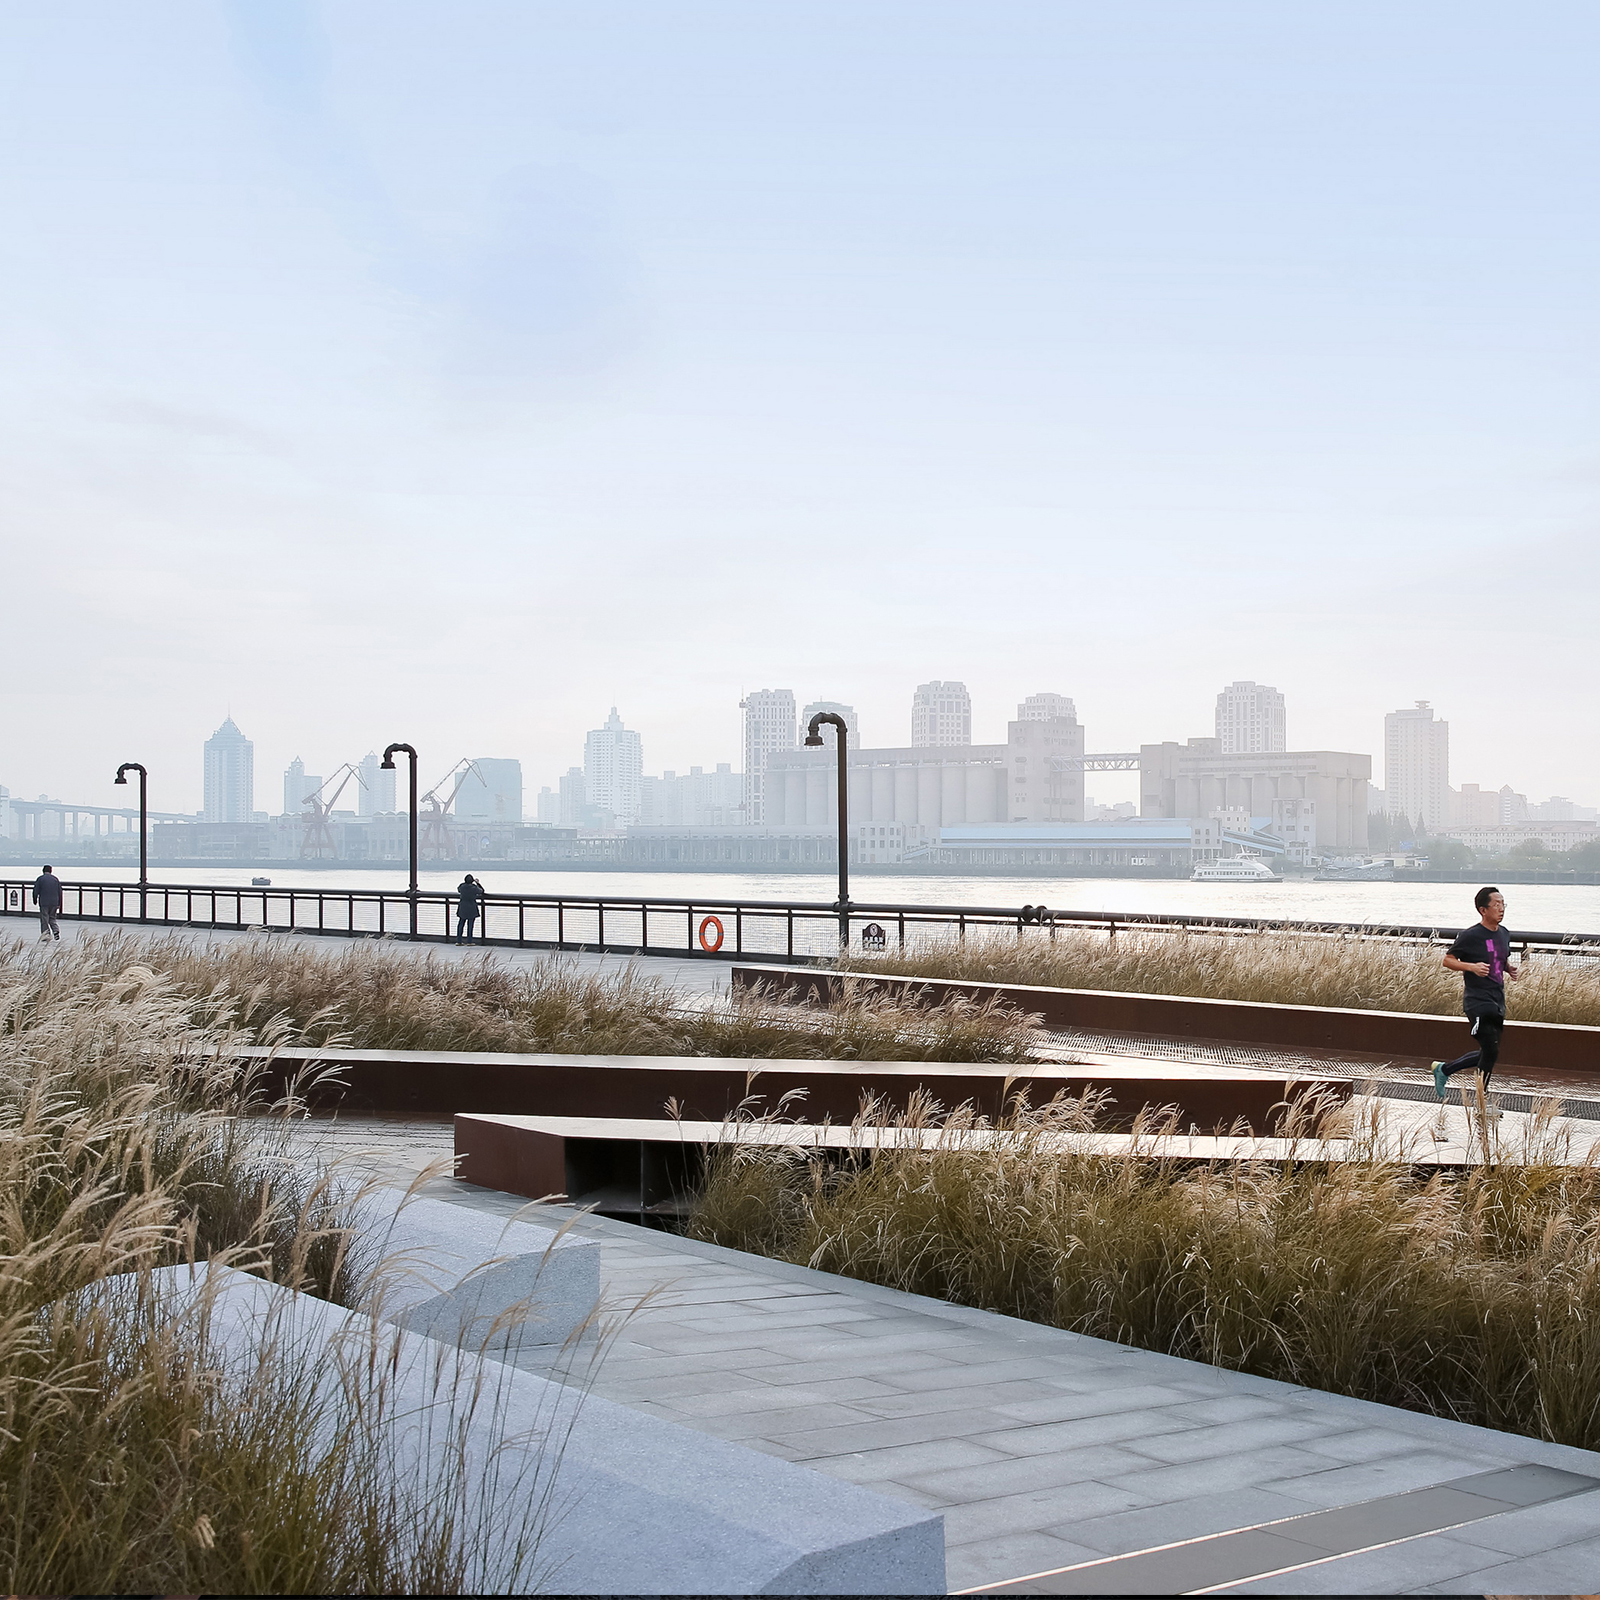 Landscape of the Year Winner 2019: Original Design Studio - Demonstration Section of Yangpu Riverside Public Space, Shanghai, China